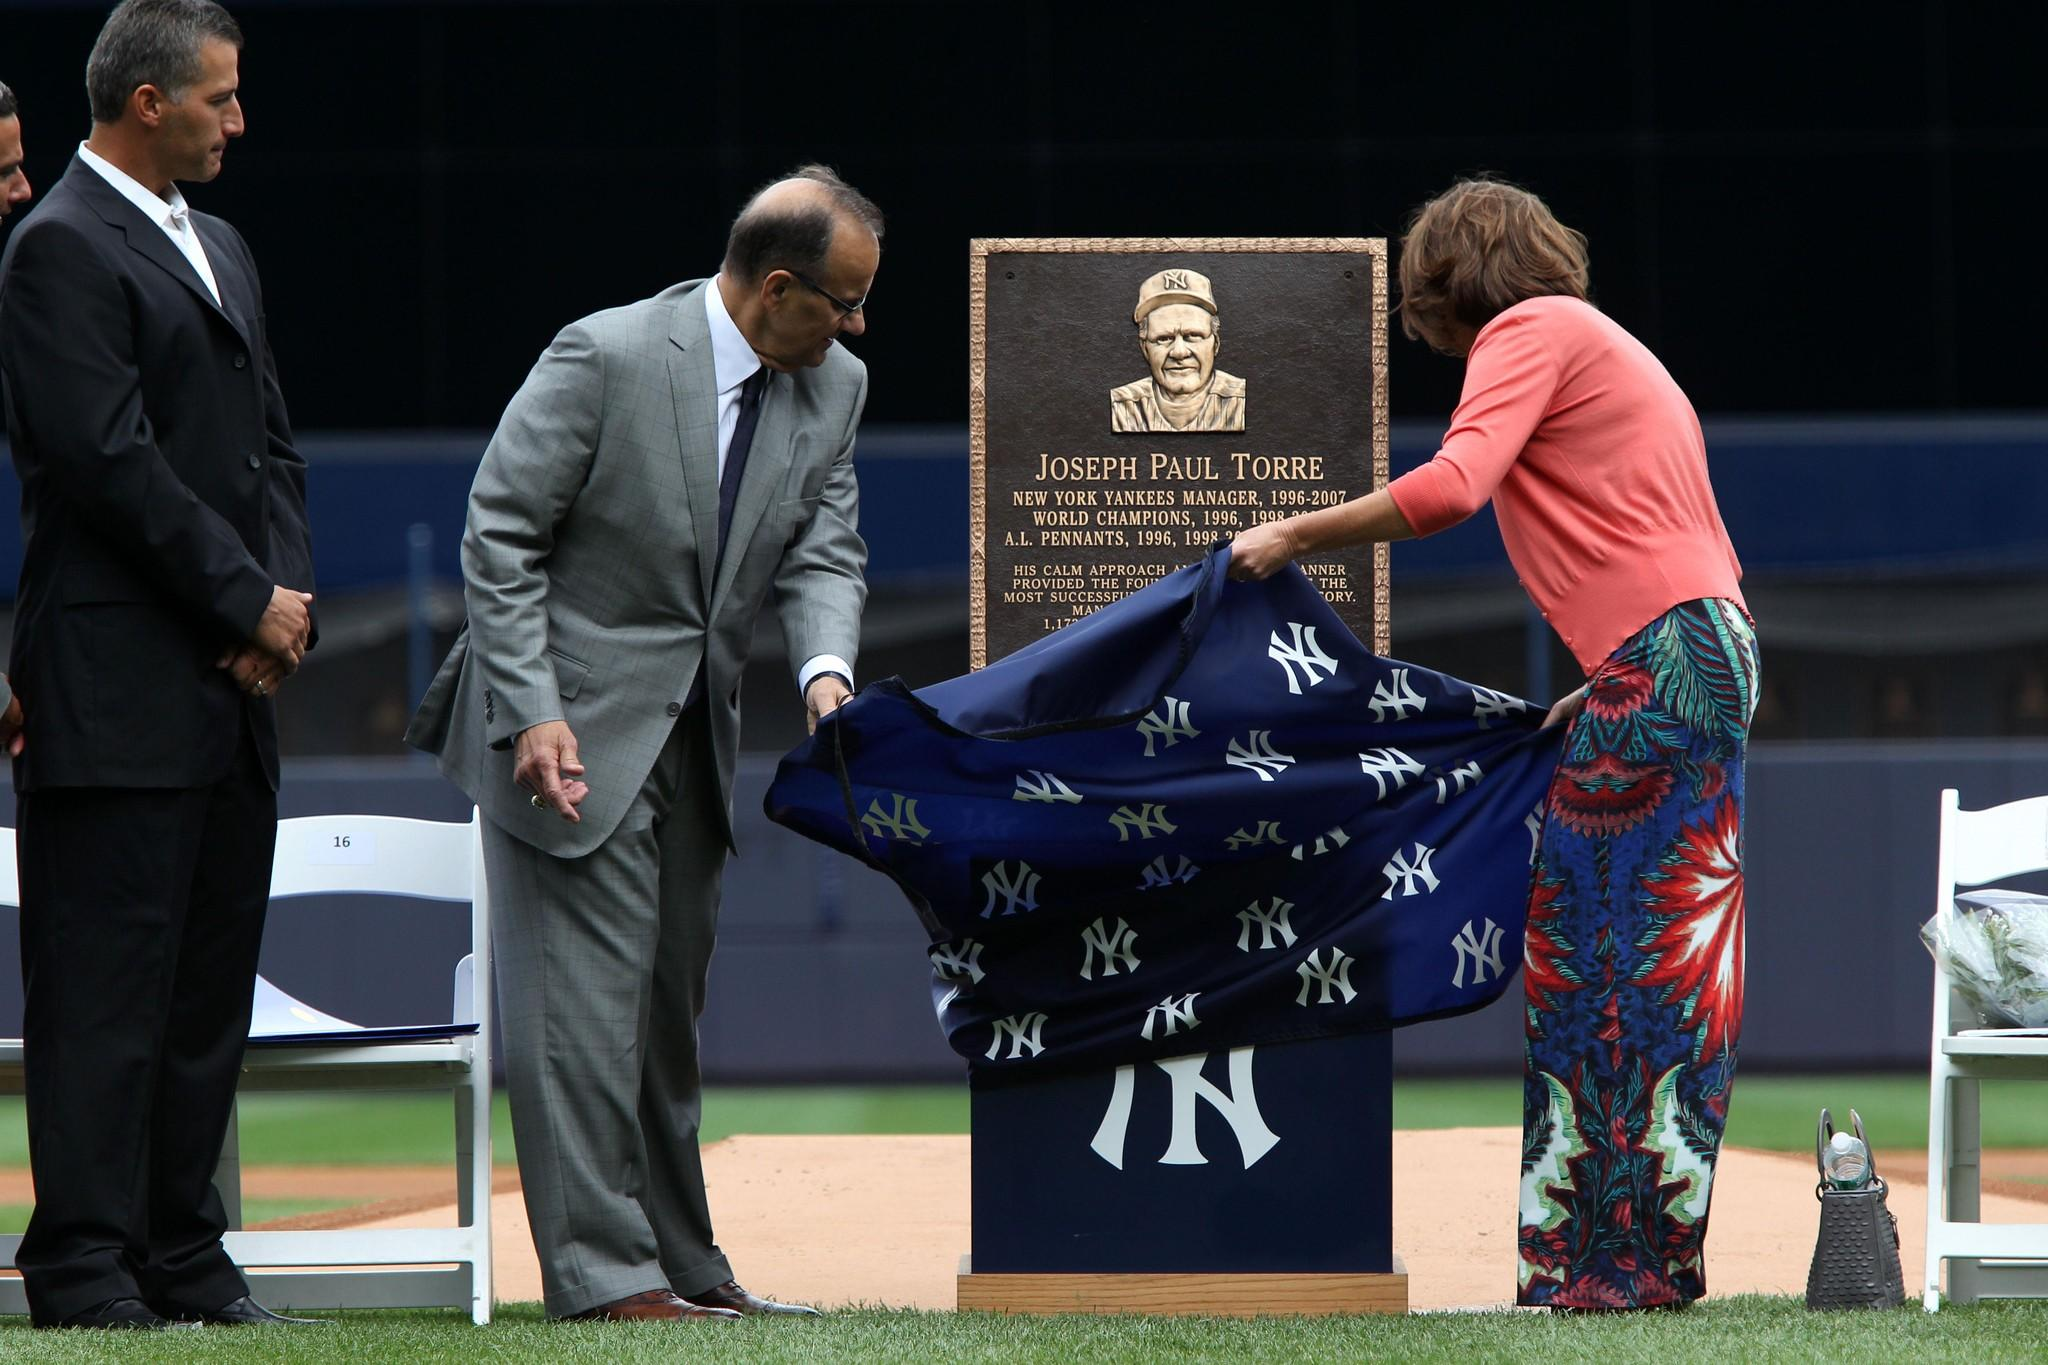 Former Yankees manager Joe Torre and his wife, Ali, unveil a plaque honoring Torre at Yankee Stadium. At left is former Yankees pitcher Andy Pettitte.